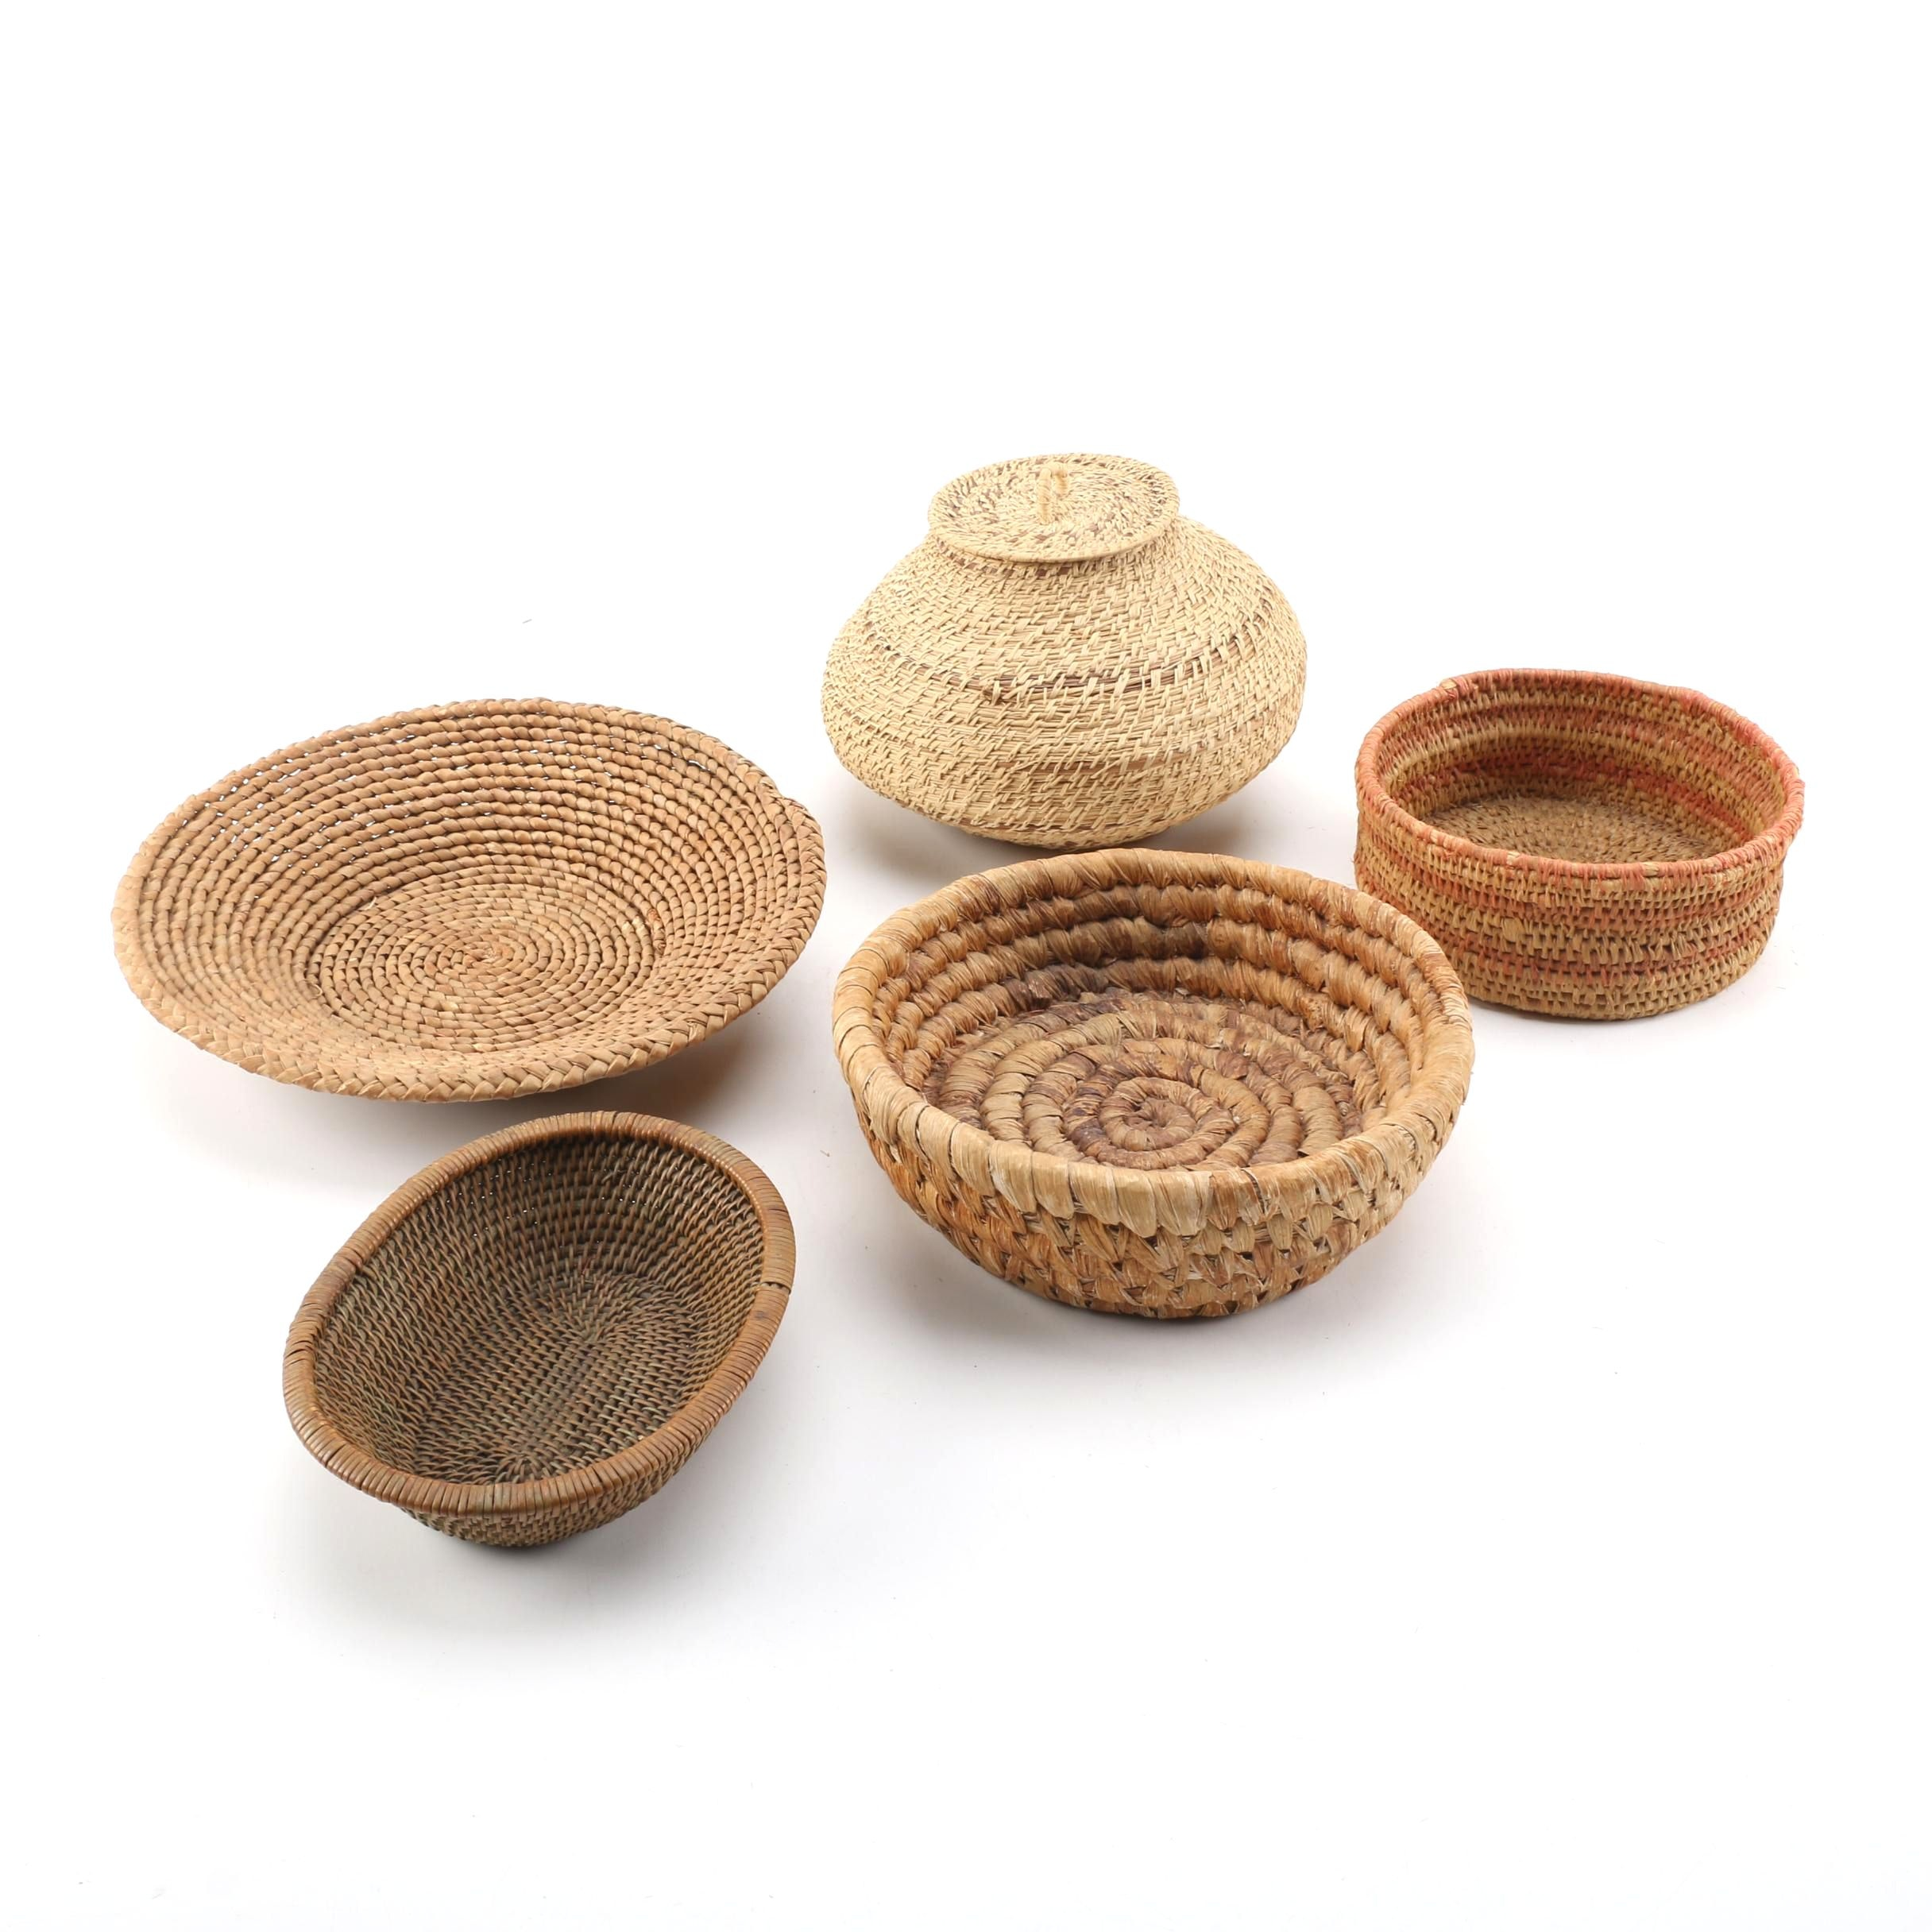 Woven Wicker and Rush Baskets